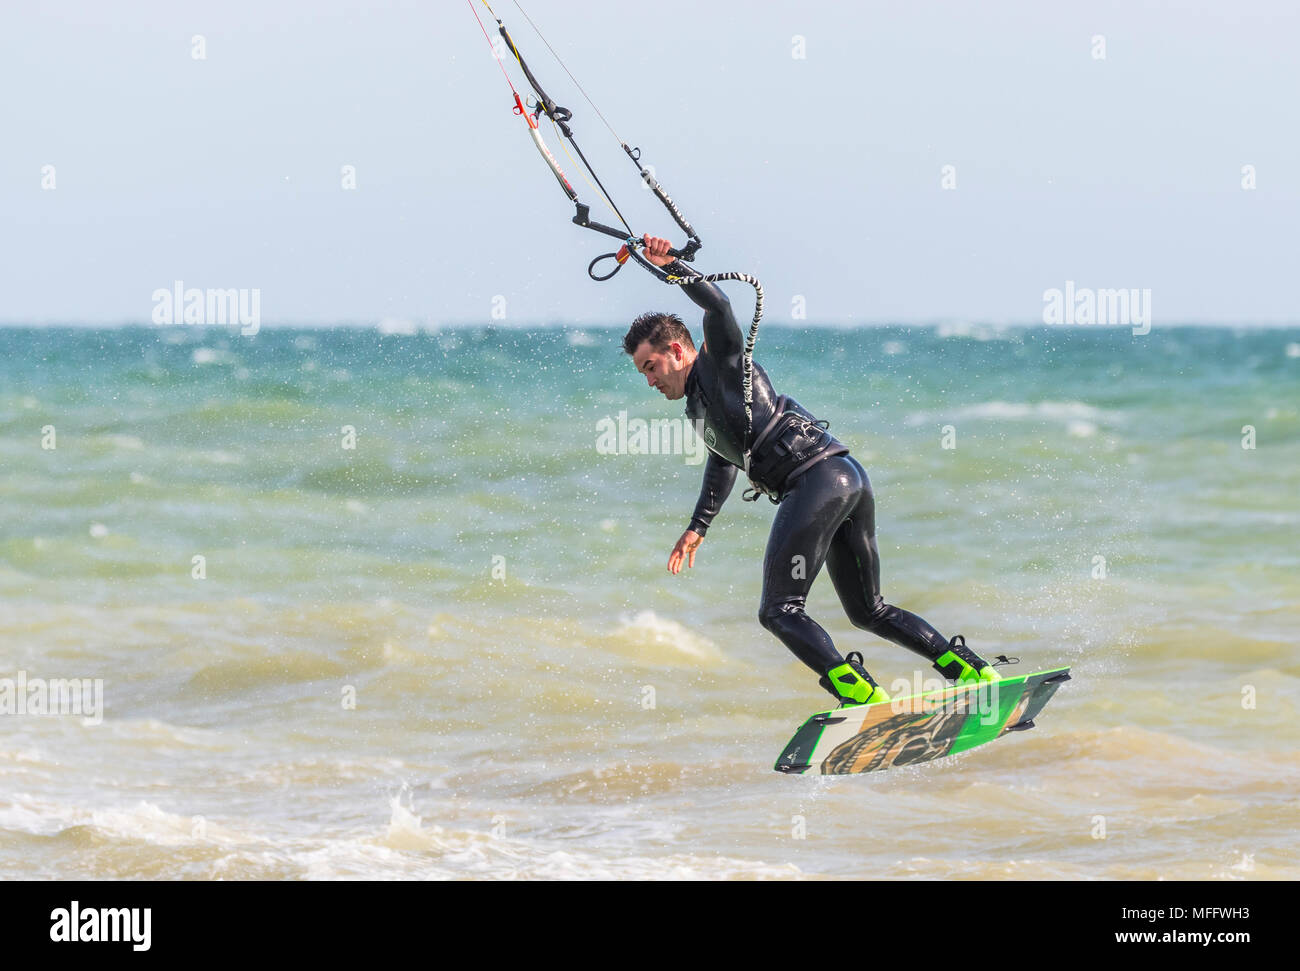 Man kitesurfing at sea and taking off while holding on with one hand. Kitesurfer on the ocean. Watersports. - Stock Image